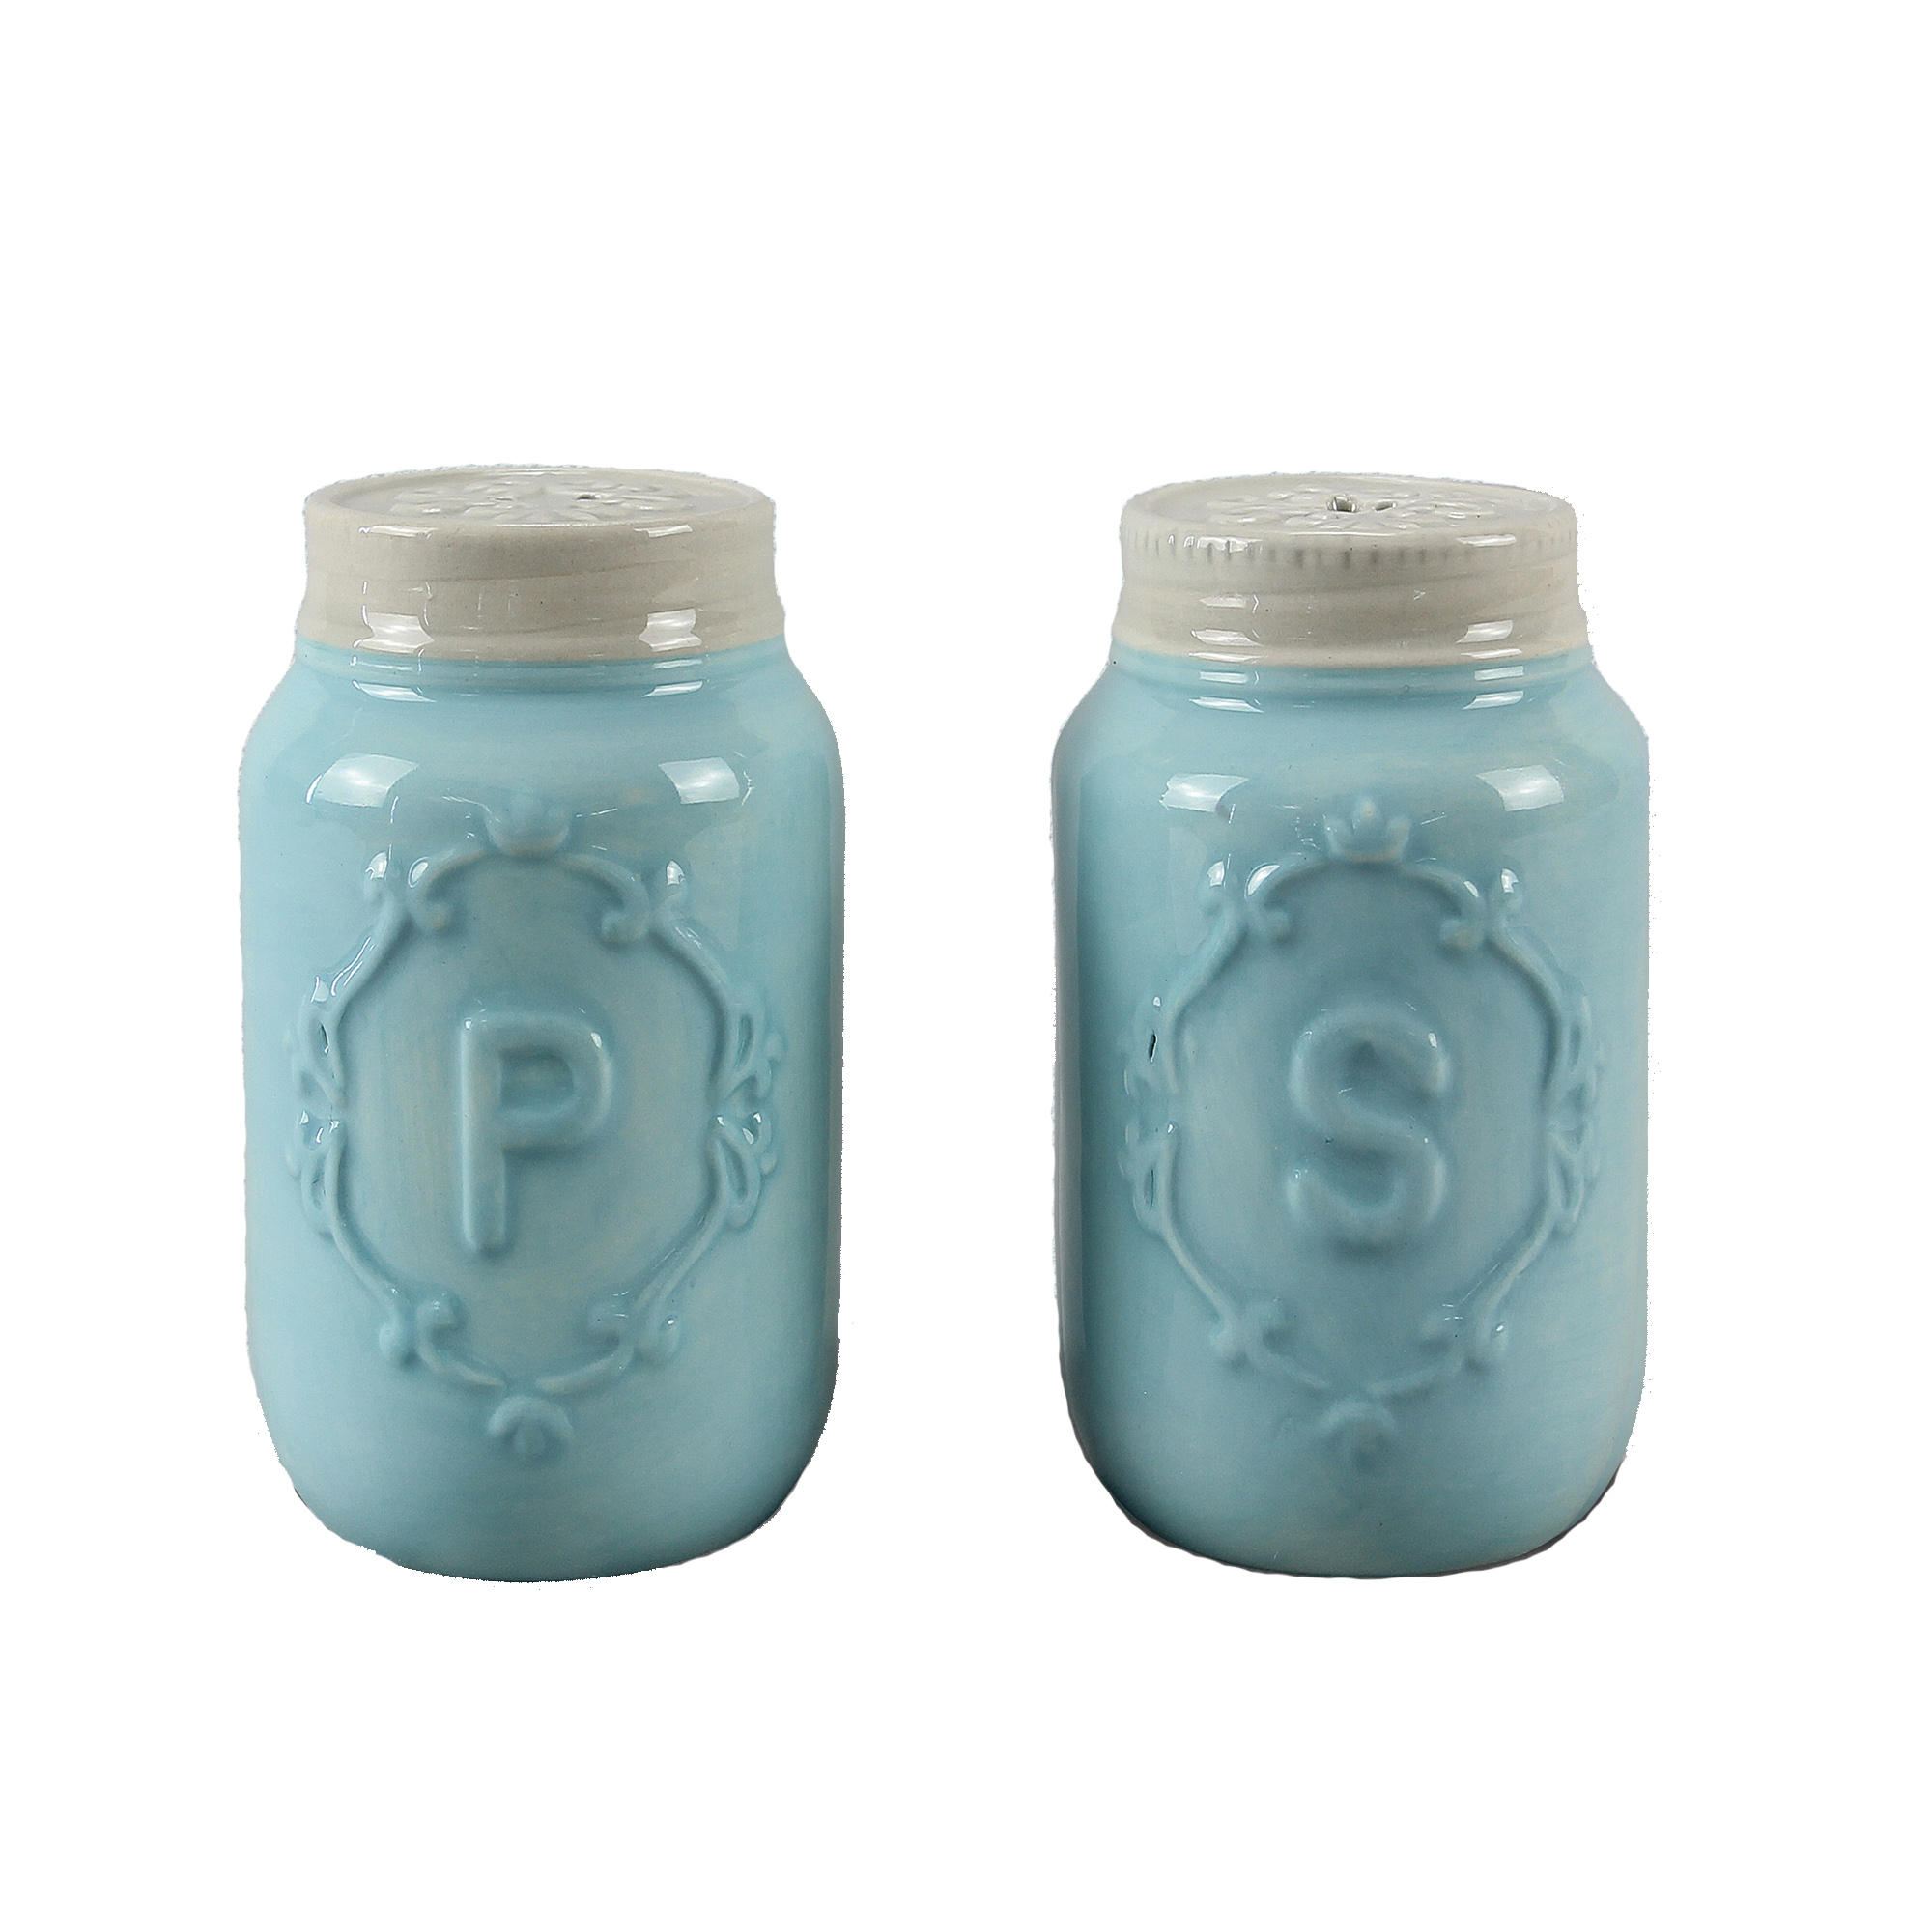 Blue Mason Jar Salt & Pepper Shakers by ZallZo 5704363e8e3d6f97398b4727